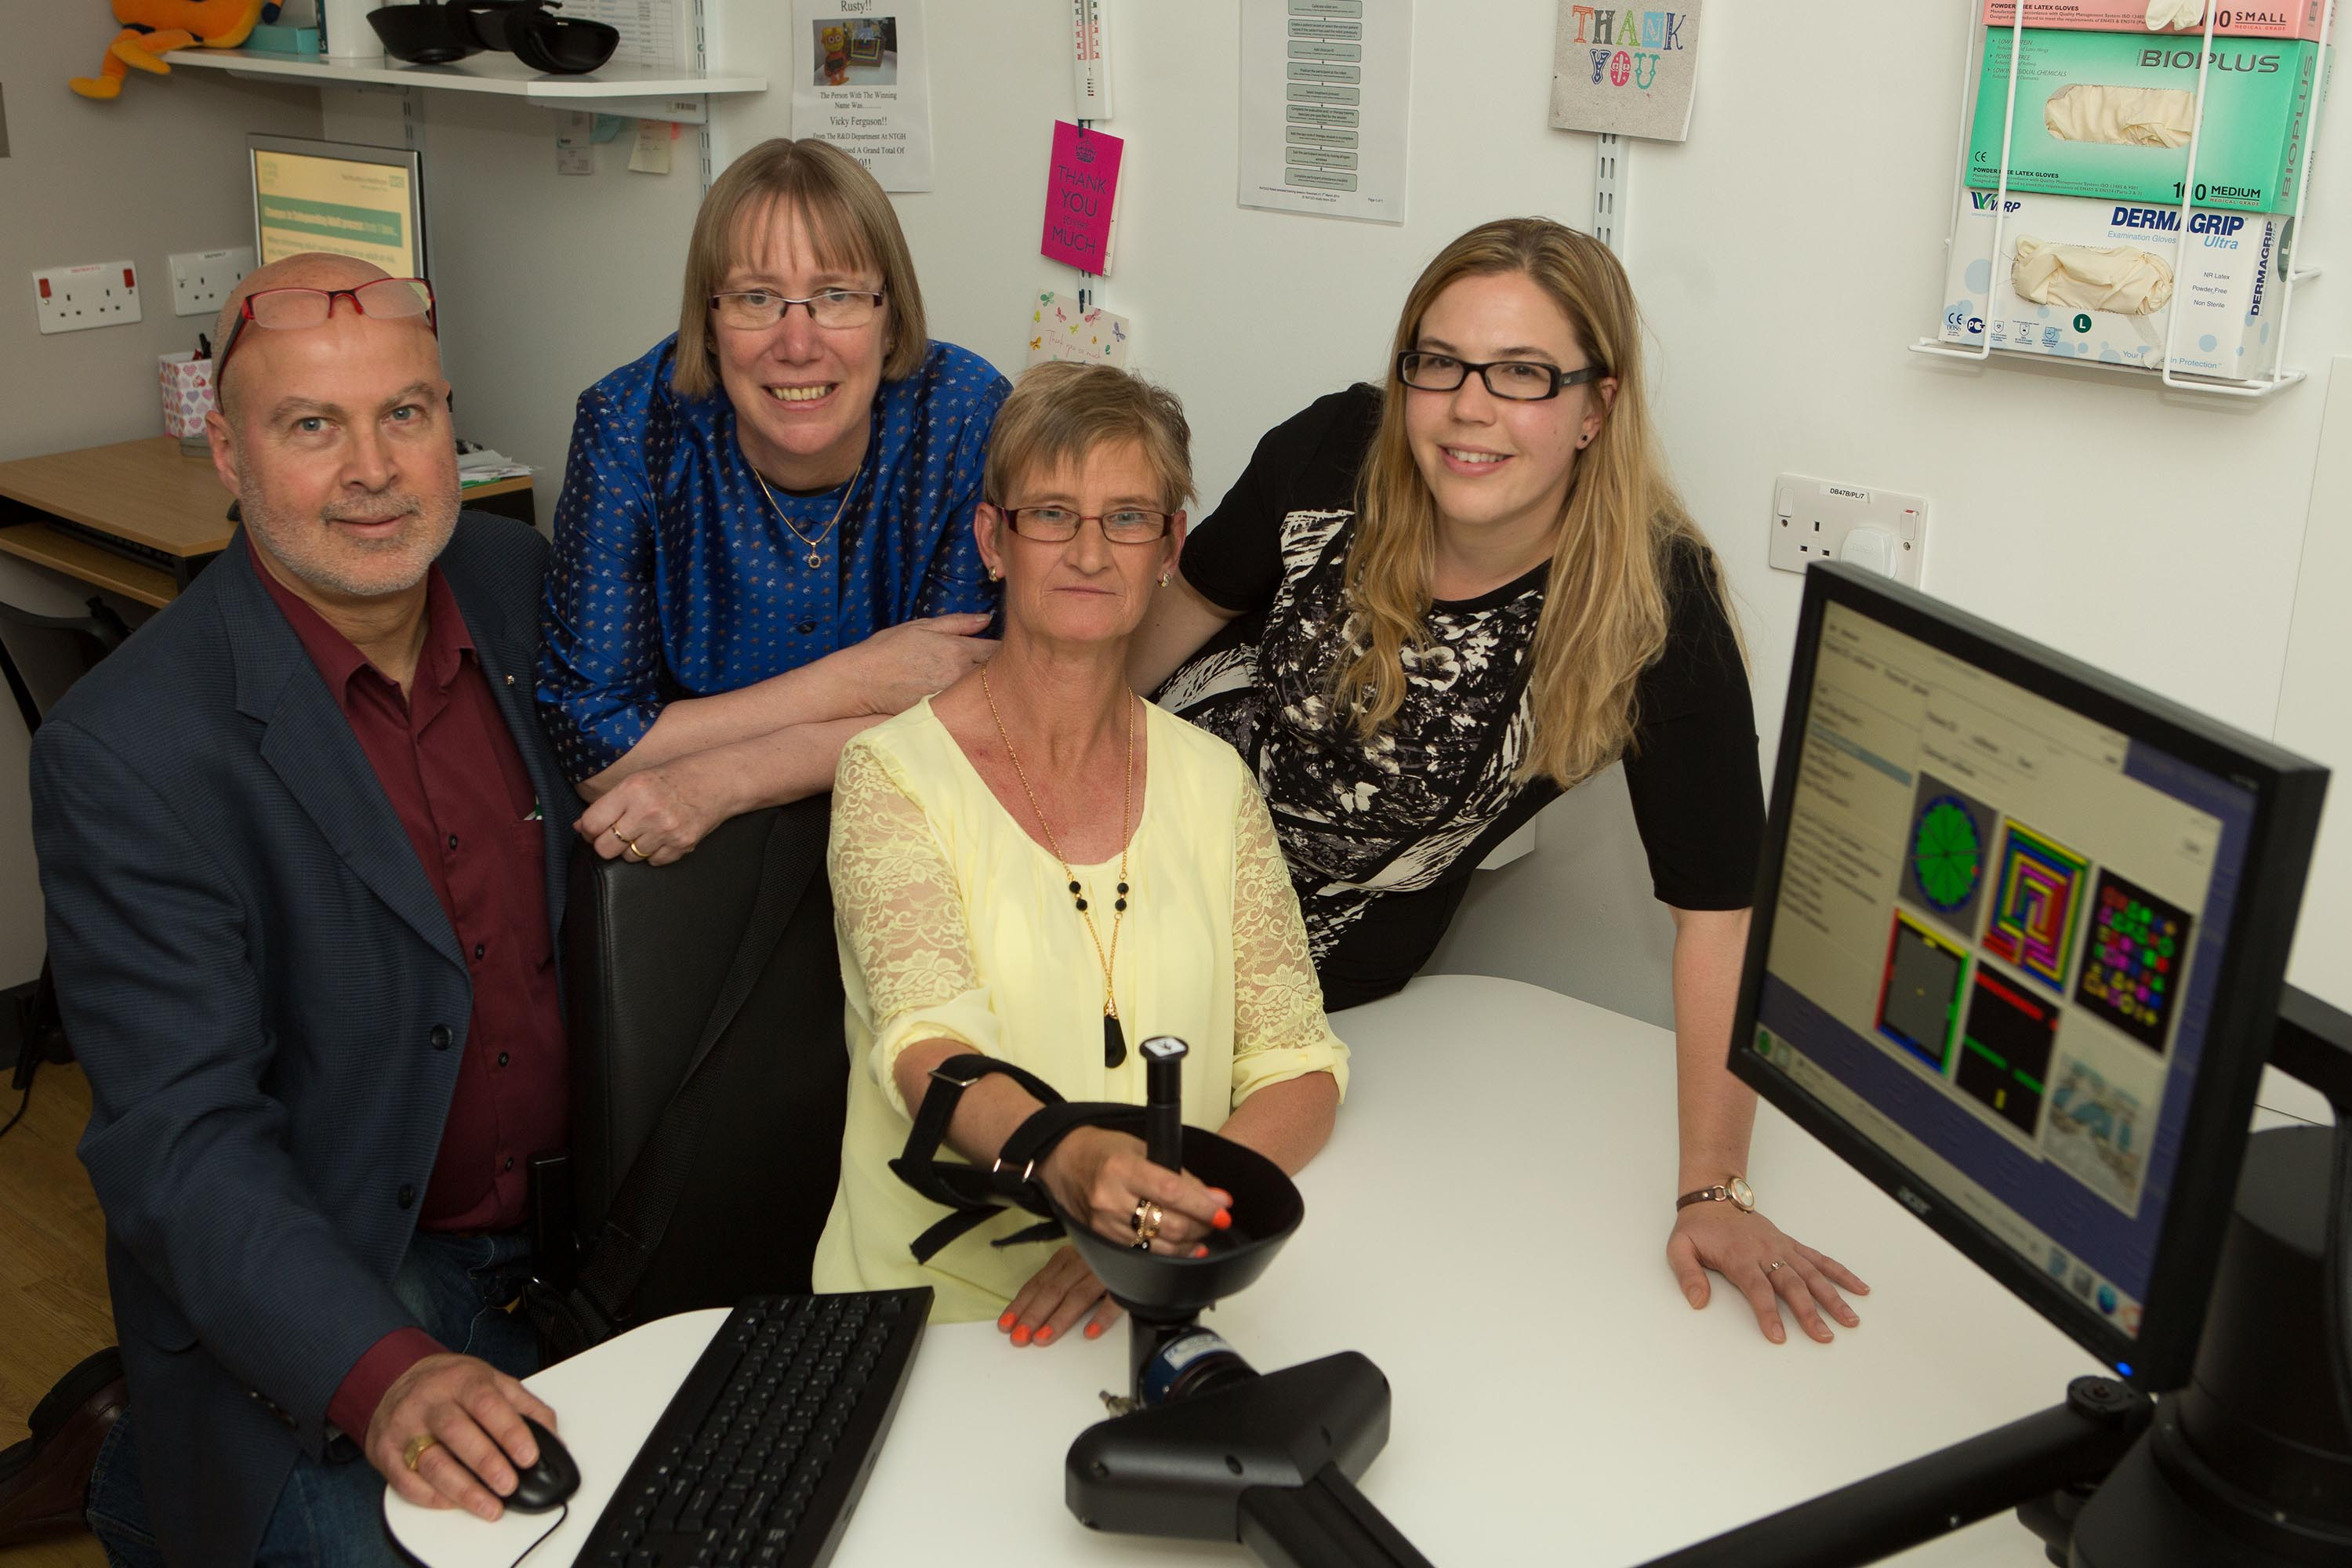 US stroke robot pioneer visits patients and staff at North East hospital